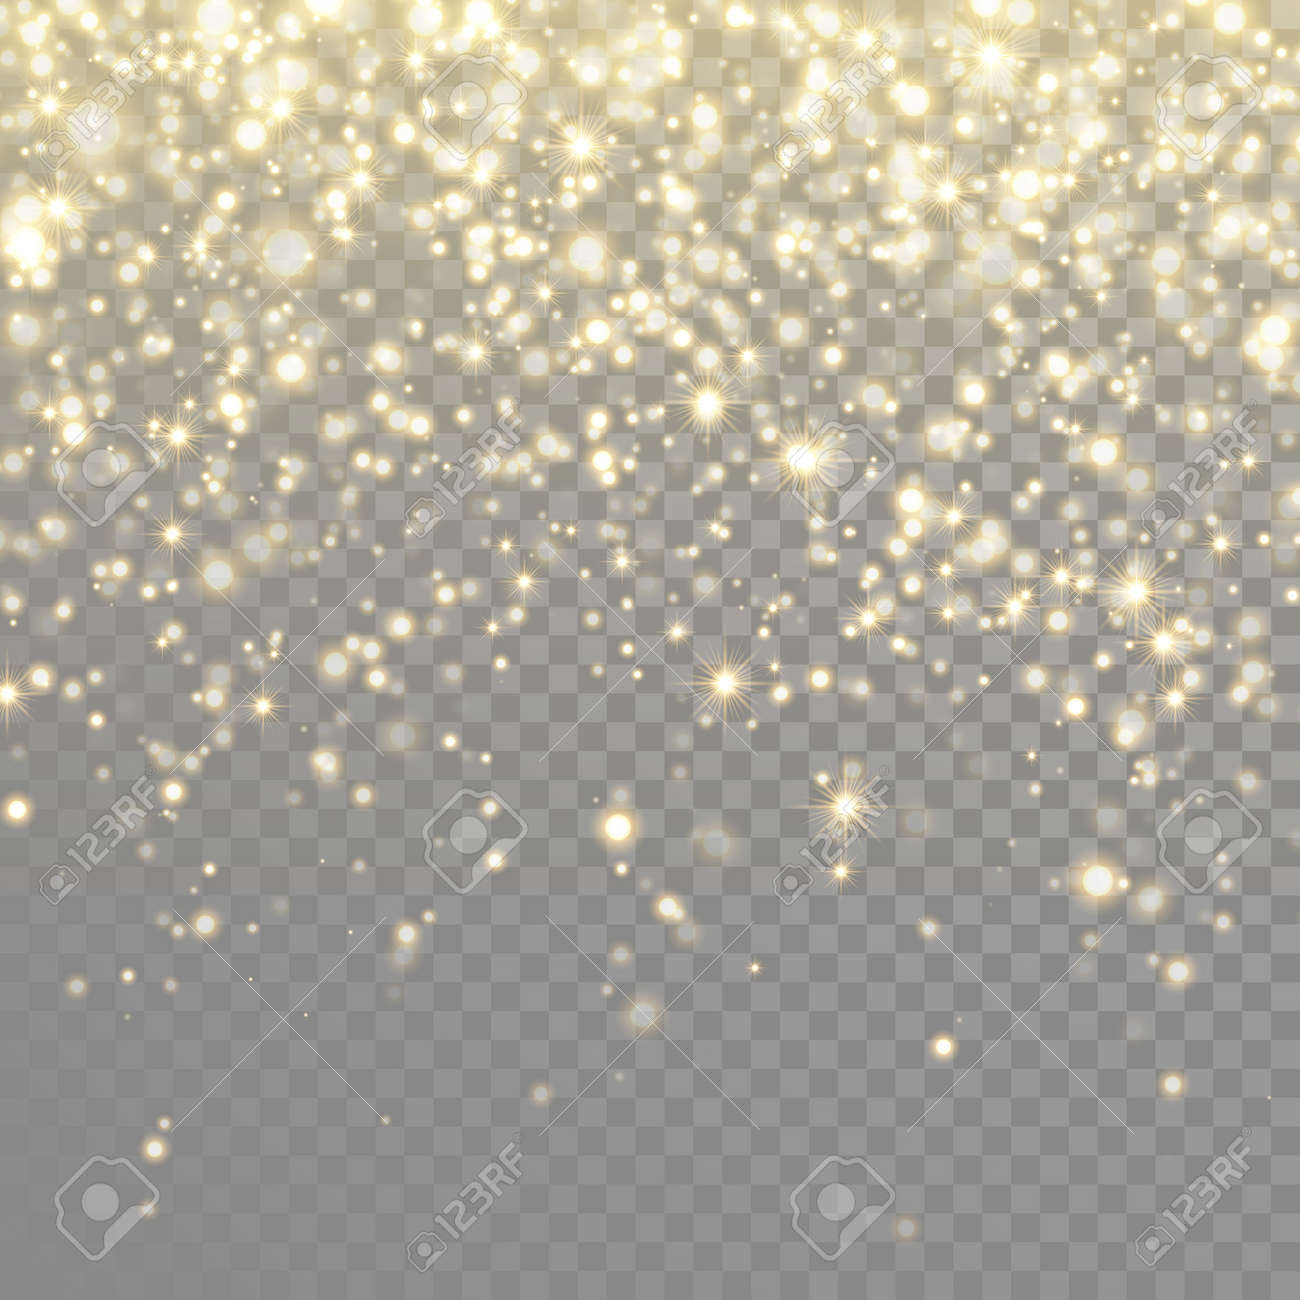 Vector gold glitter particles background light effect for luxury